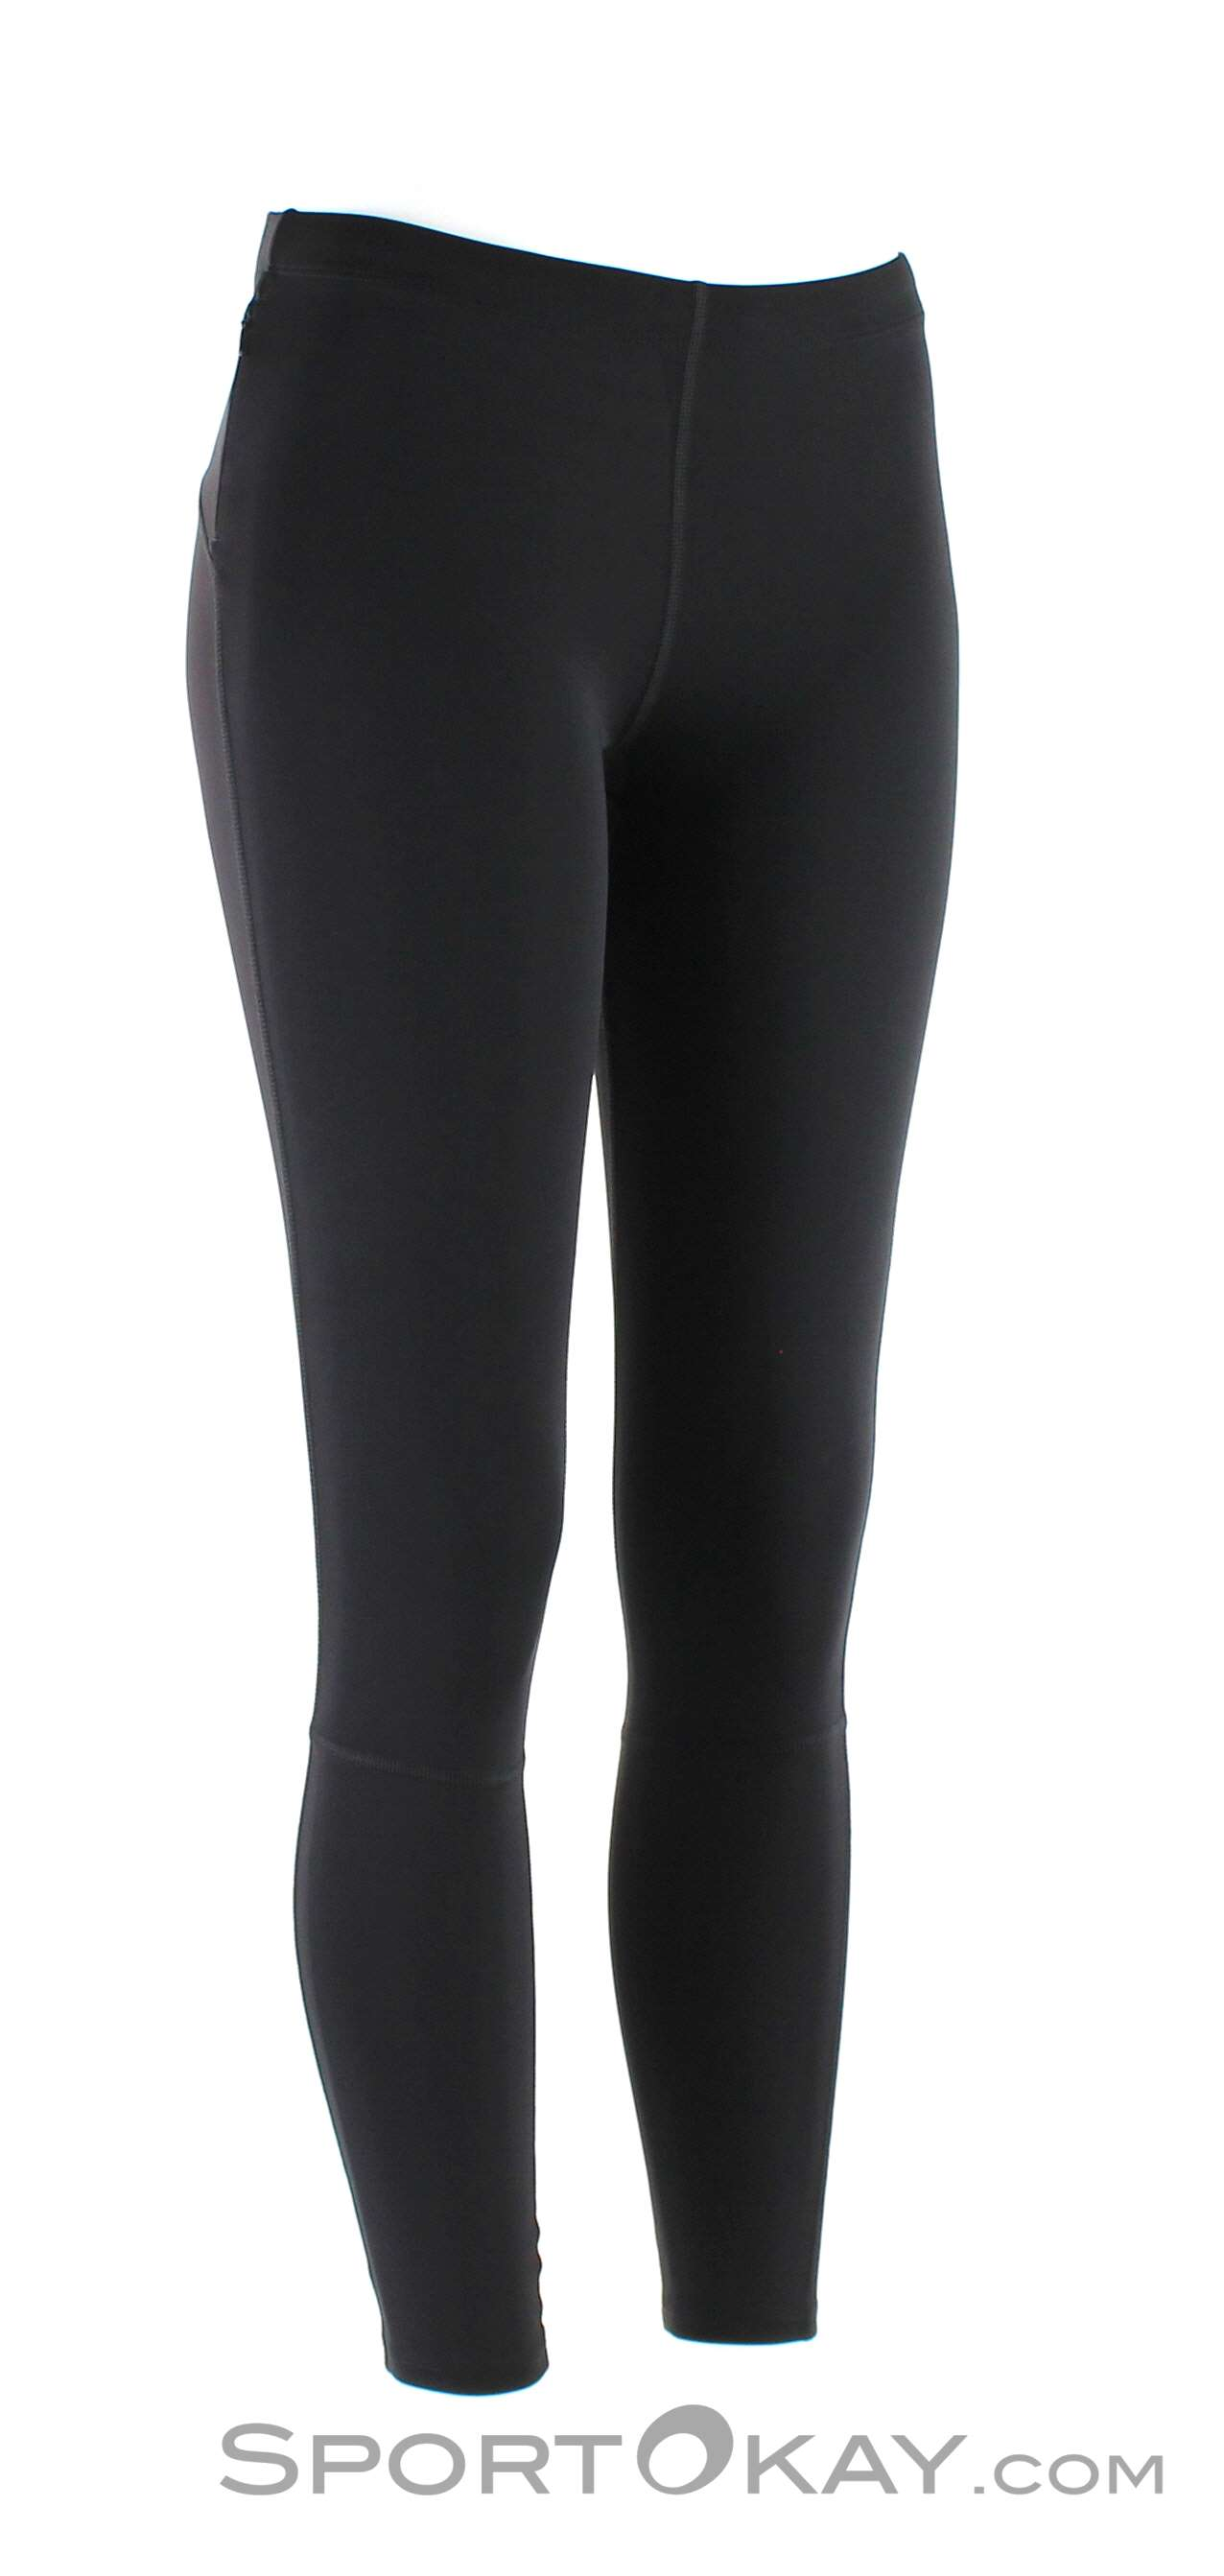 asics damen tights schwarz blau